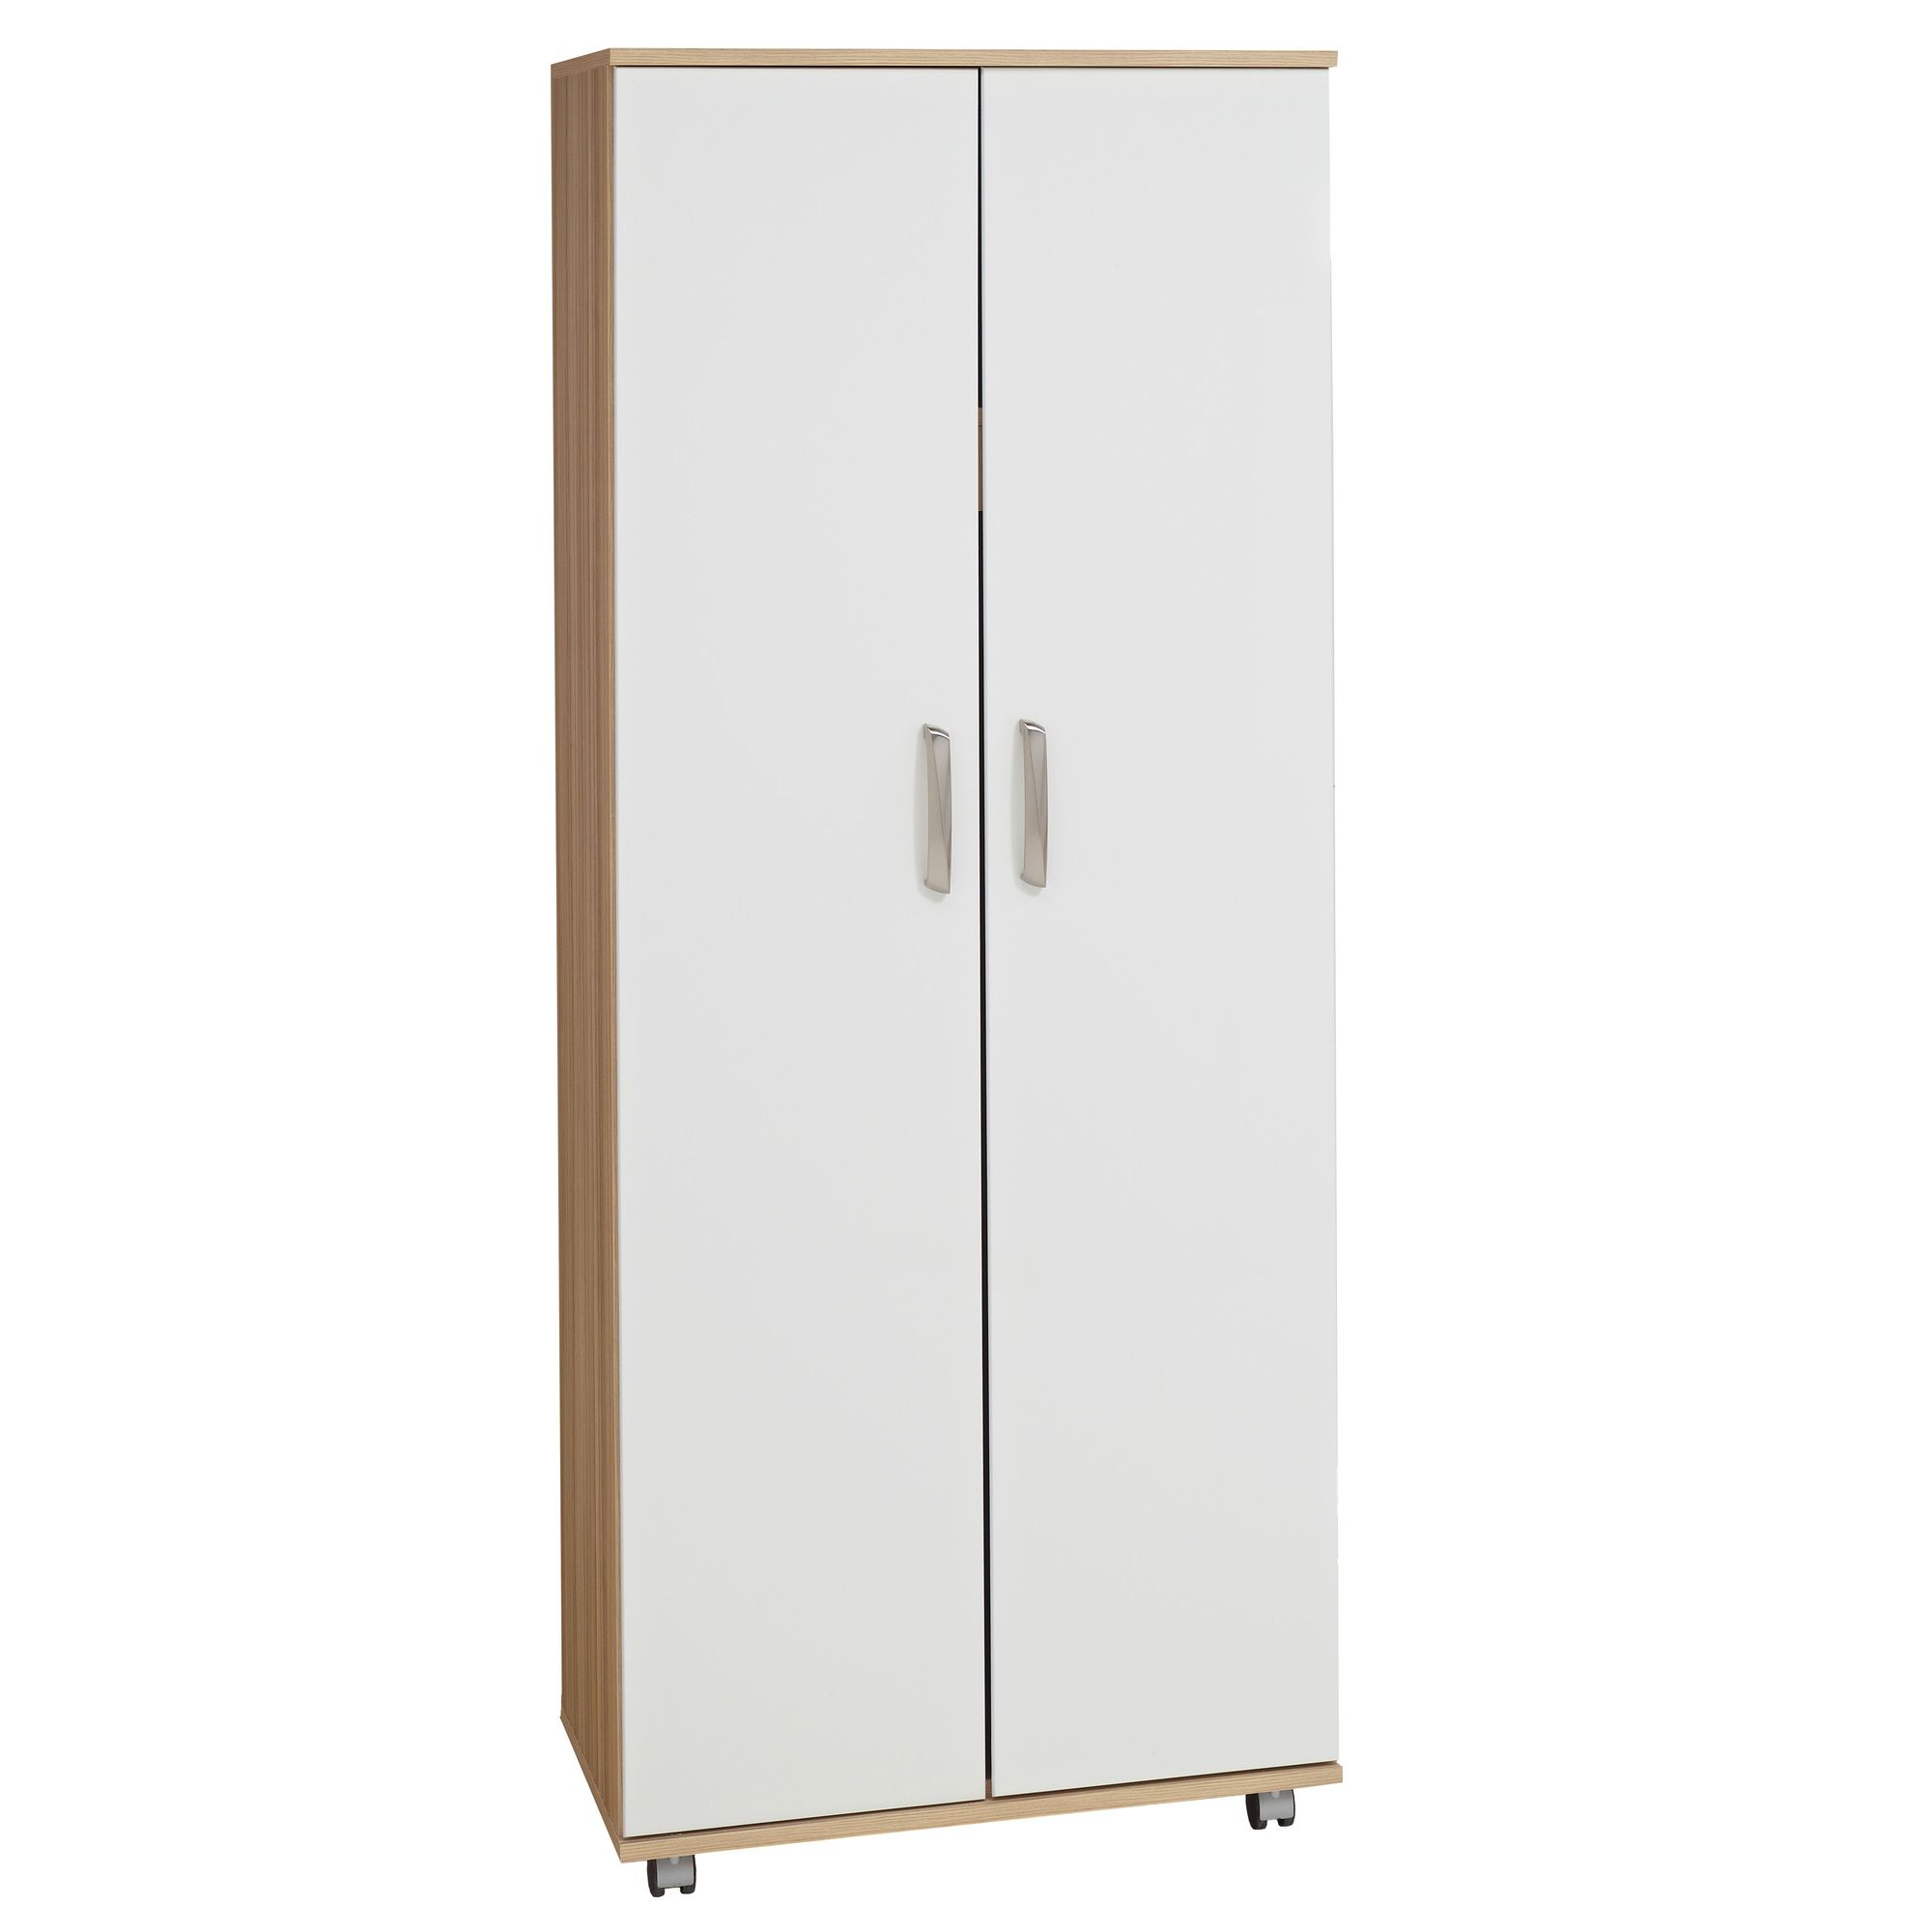 Ideal Furniture Regal 2 Door Palin Wardrobe in white at Tesco Direct